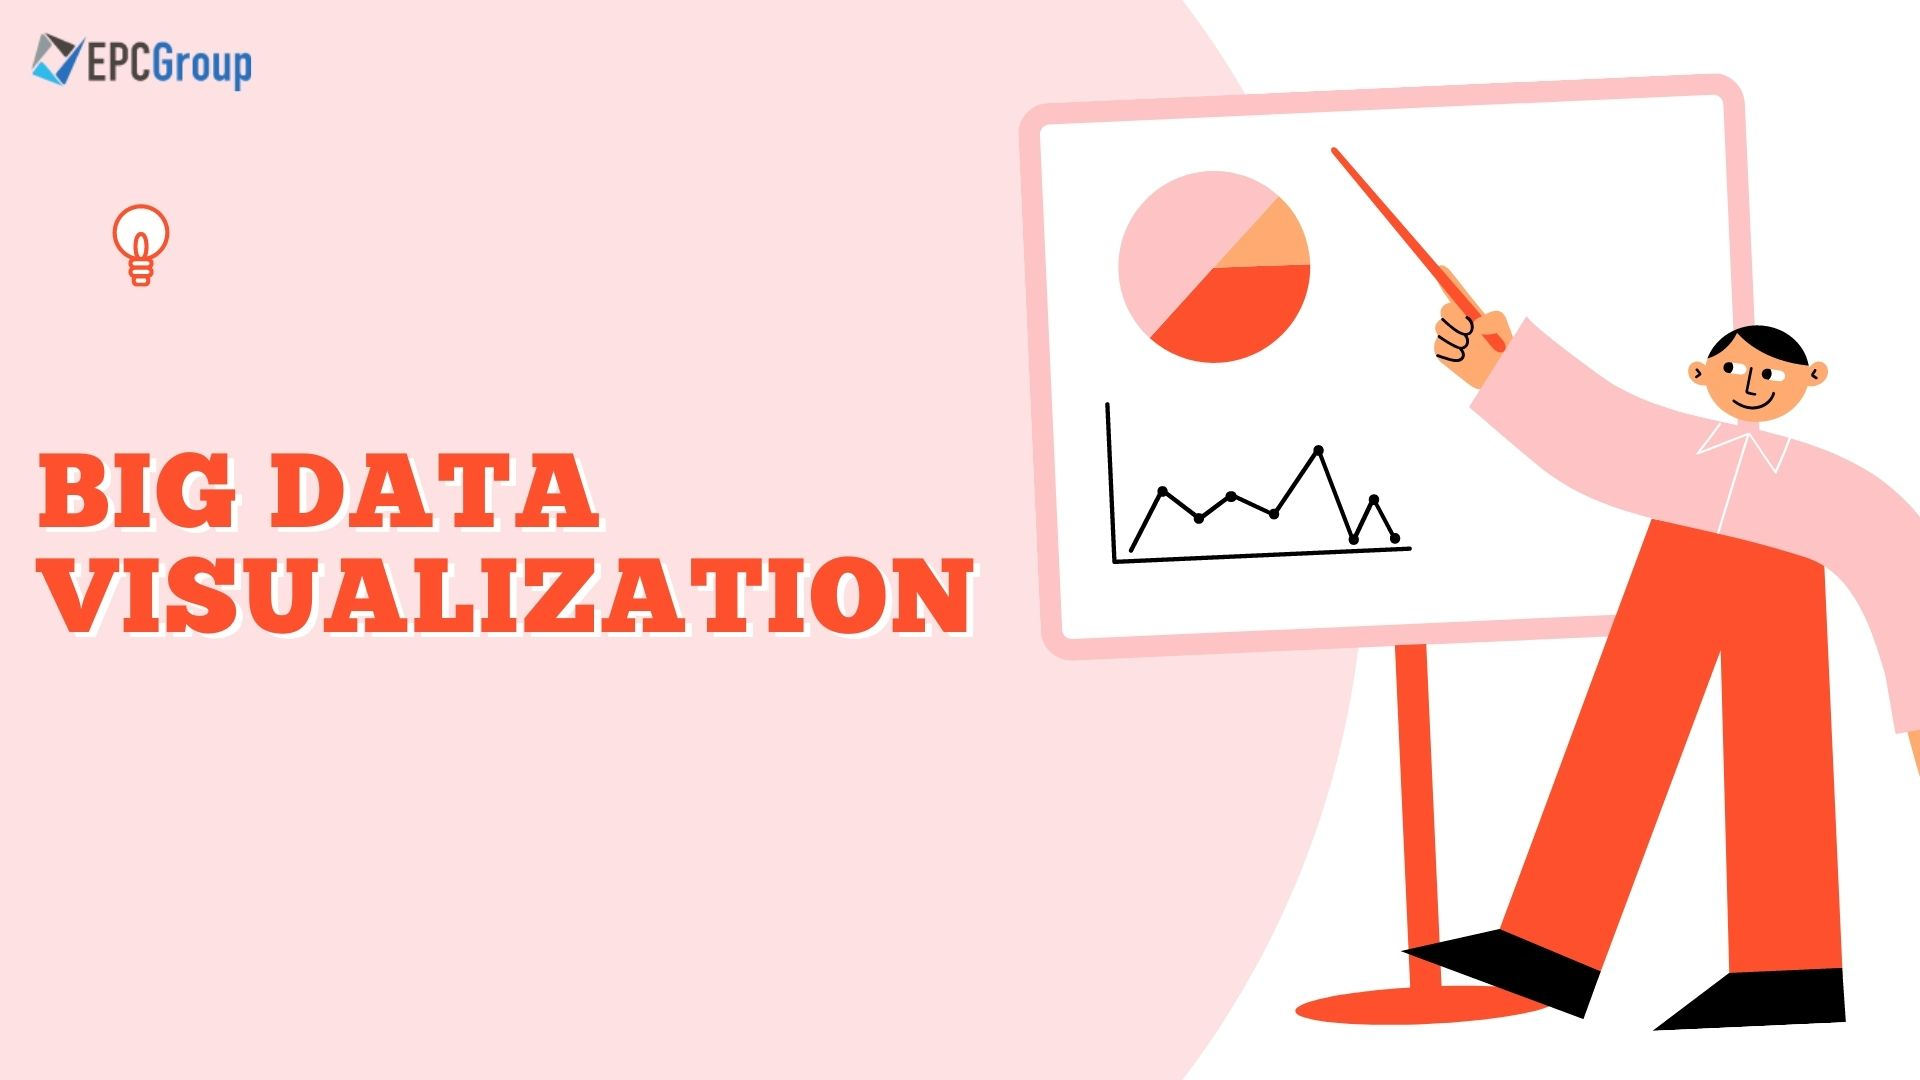 Best Practices For Big Data Visualization - thumb image